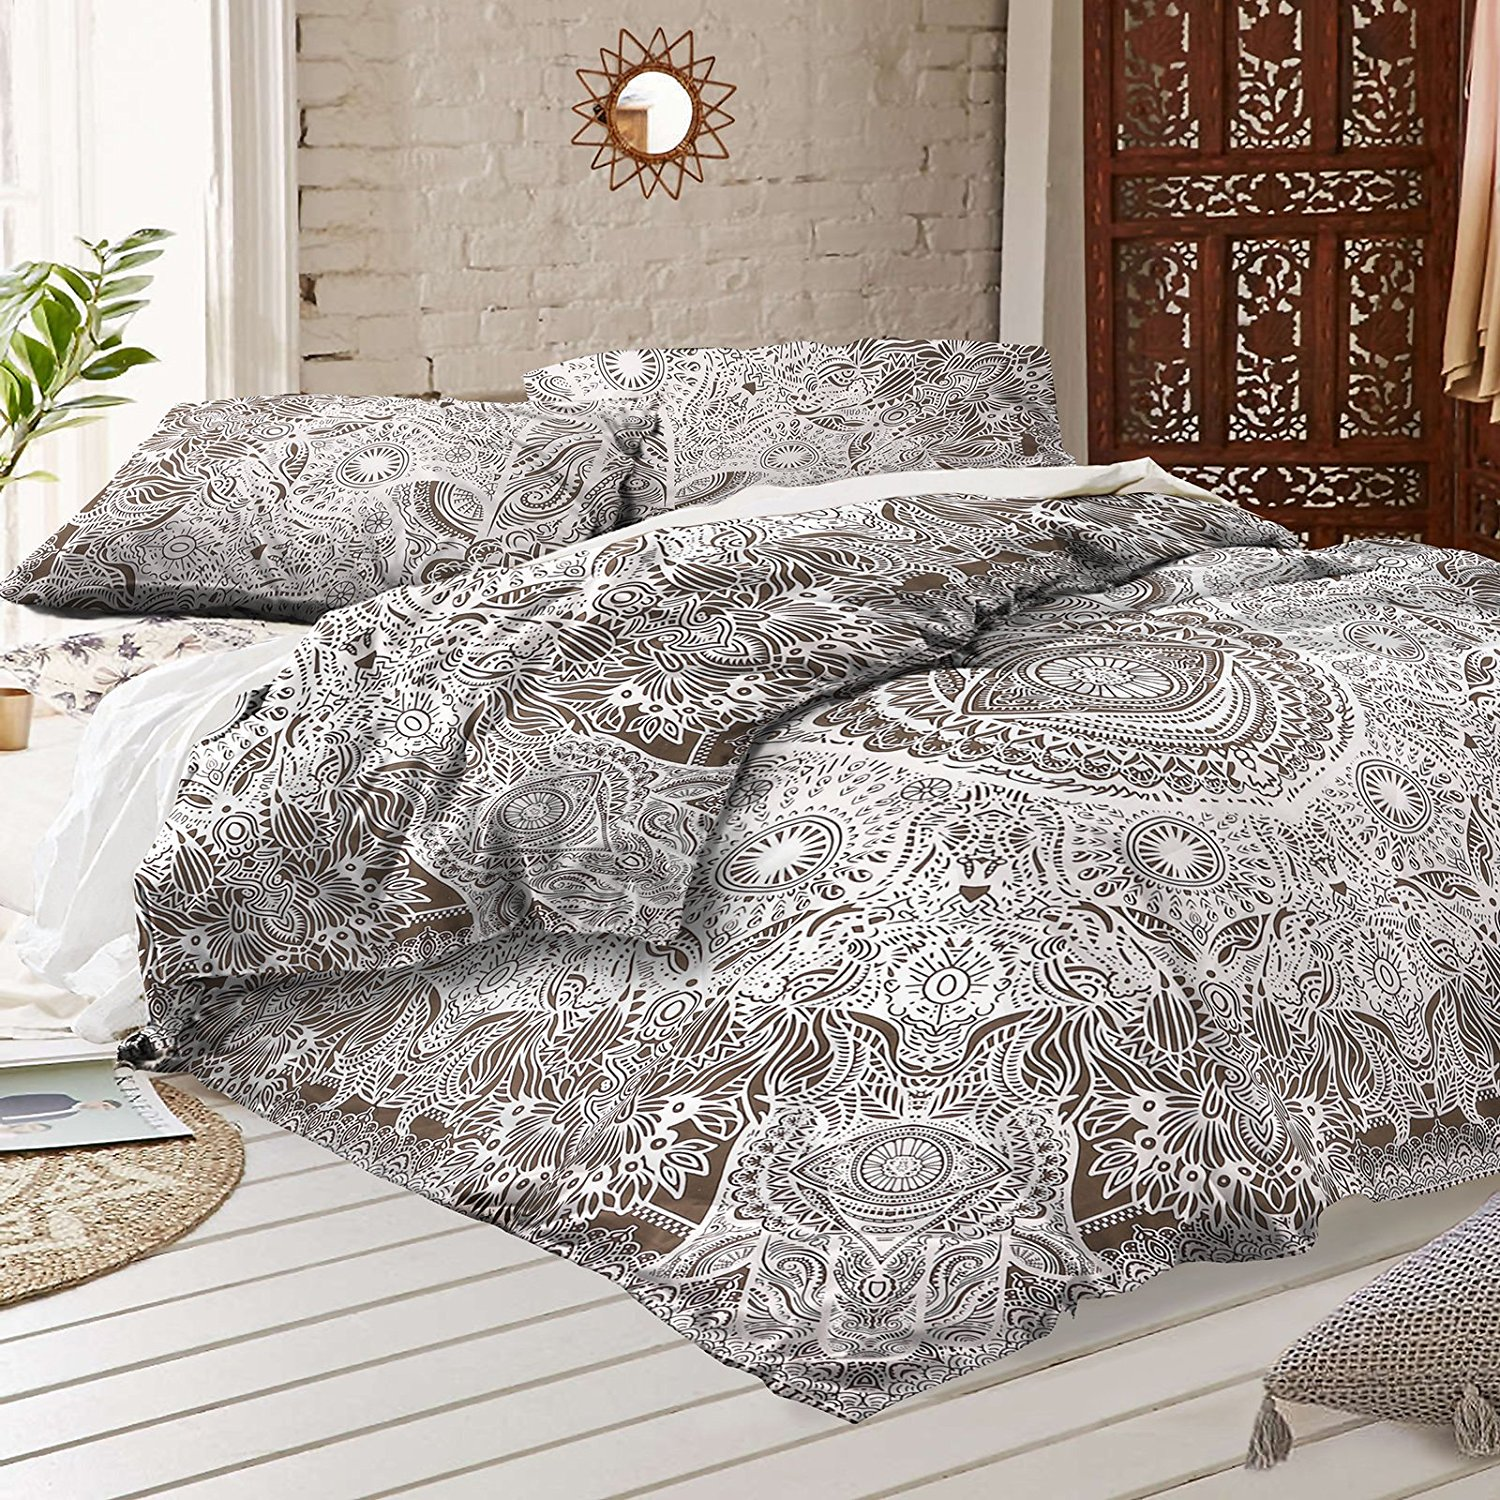 detail bohemian dada product bedding patchwork cotton set partners collection quilt reversible our real